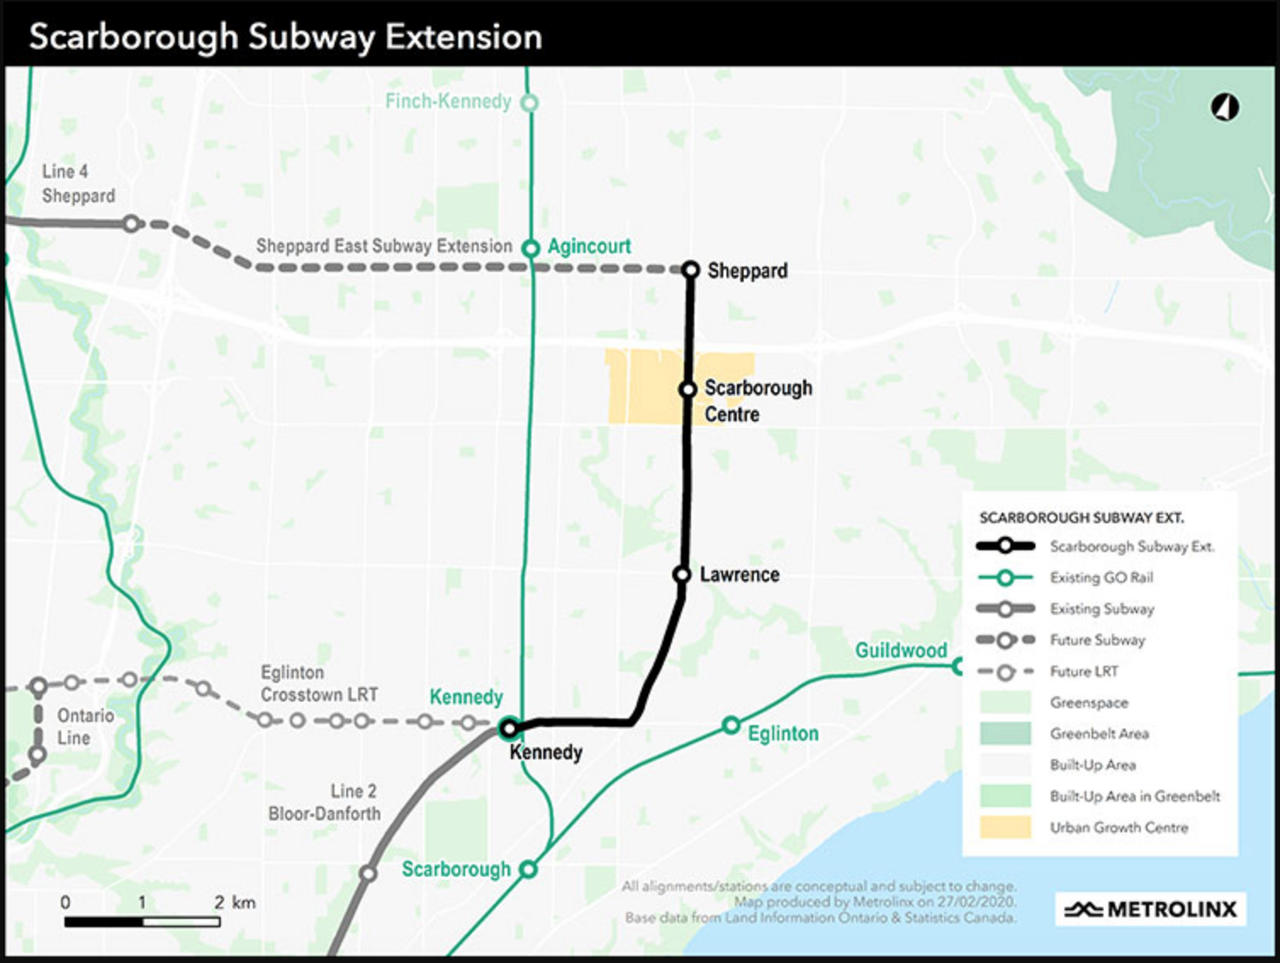 The Scarborough Subway Extension project will bring Toronto Transit Commission's Line 2 subway 4.8 miles (7.8 kilometers) further into Scarborough, with stations at Lawrence Avenue and McCowan Road; Scarborough Center; and Sheppard Avenue and McCowan Road.